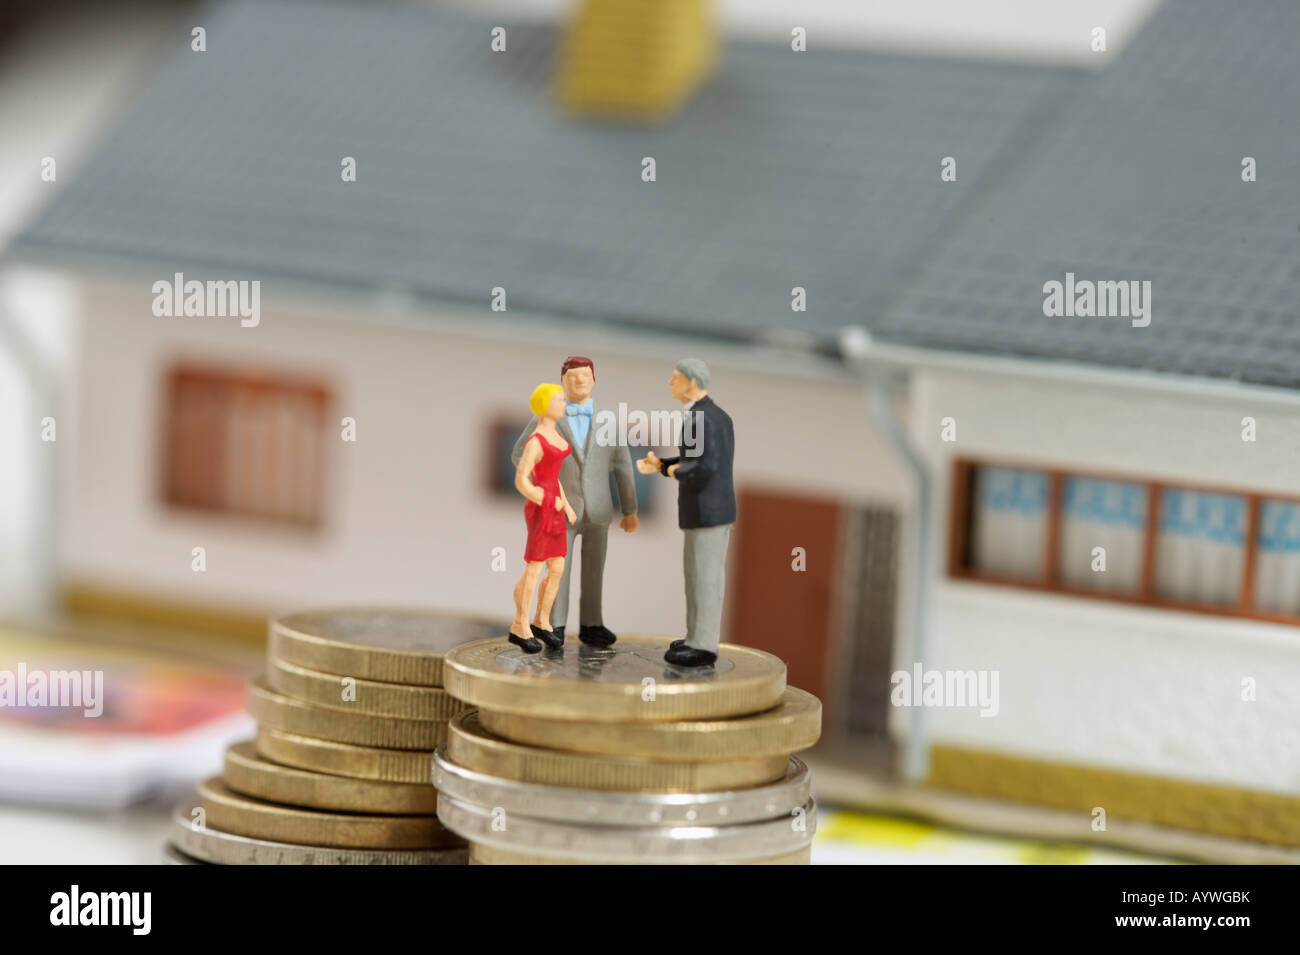 Figurines on a stack of coins, miniature house in background - Stock Image